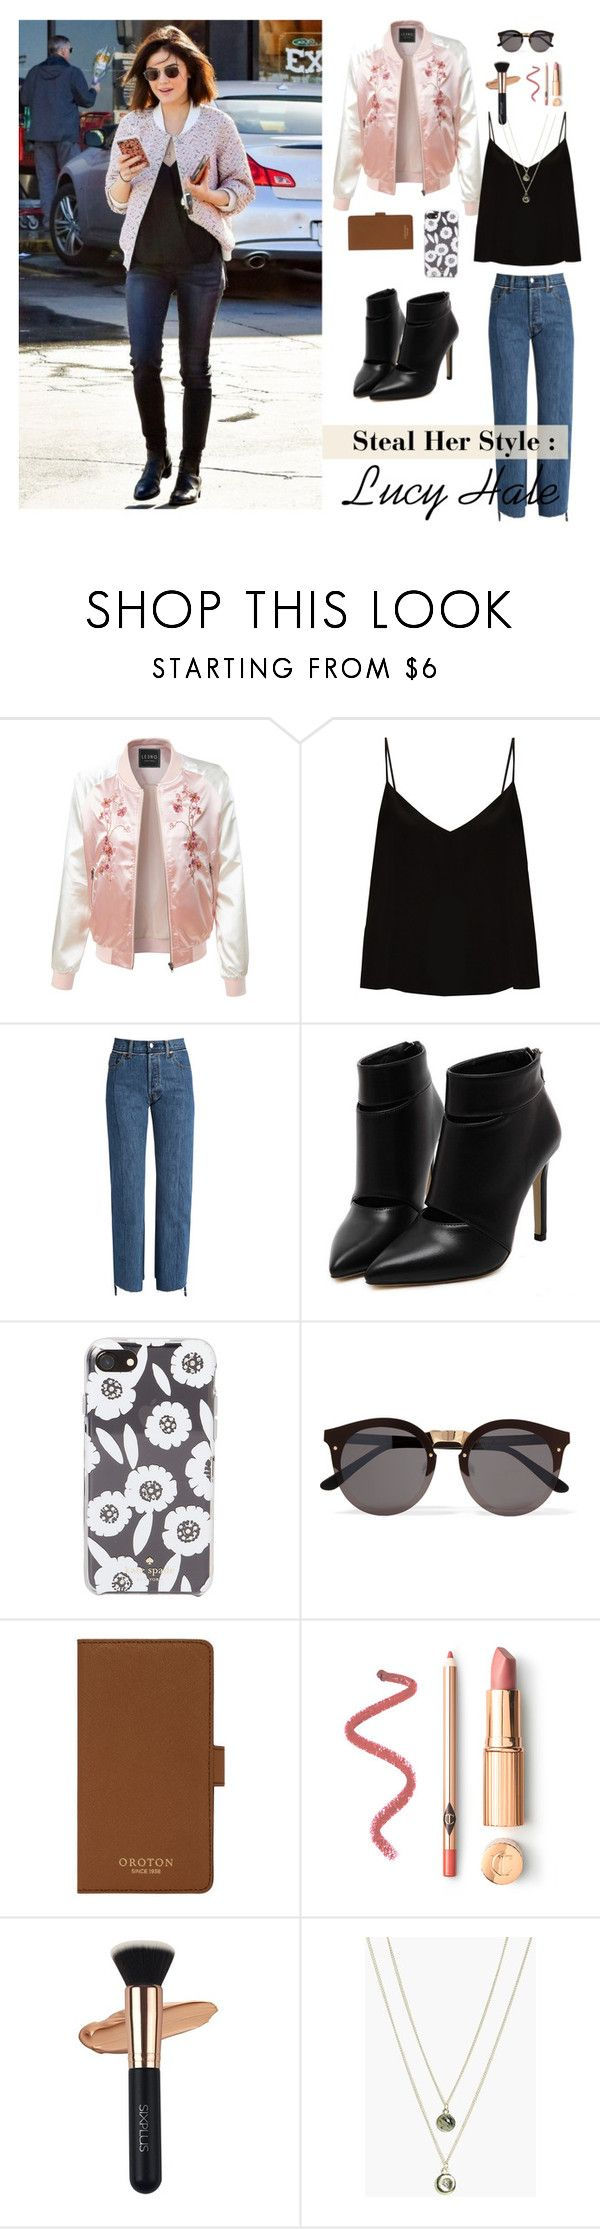 """""""Steal Her Style: Lucy Hale"""" by meetyesintacin on Polyvore featuring LE3NO, Raey, Vetements, Kate Spade, Illesteva, Oroton and Boohoo"""